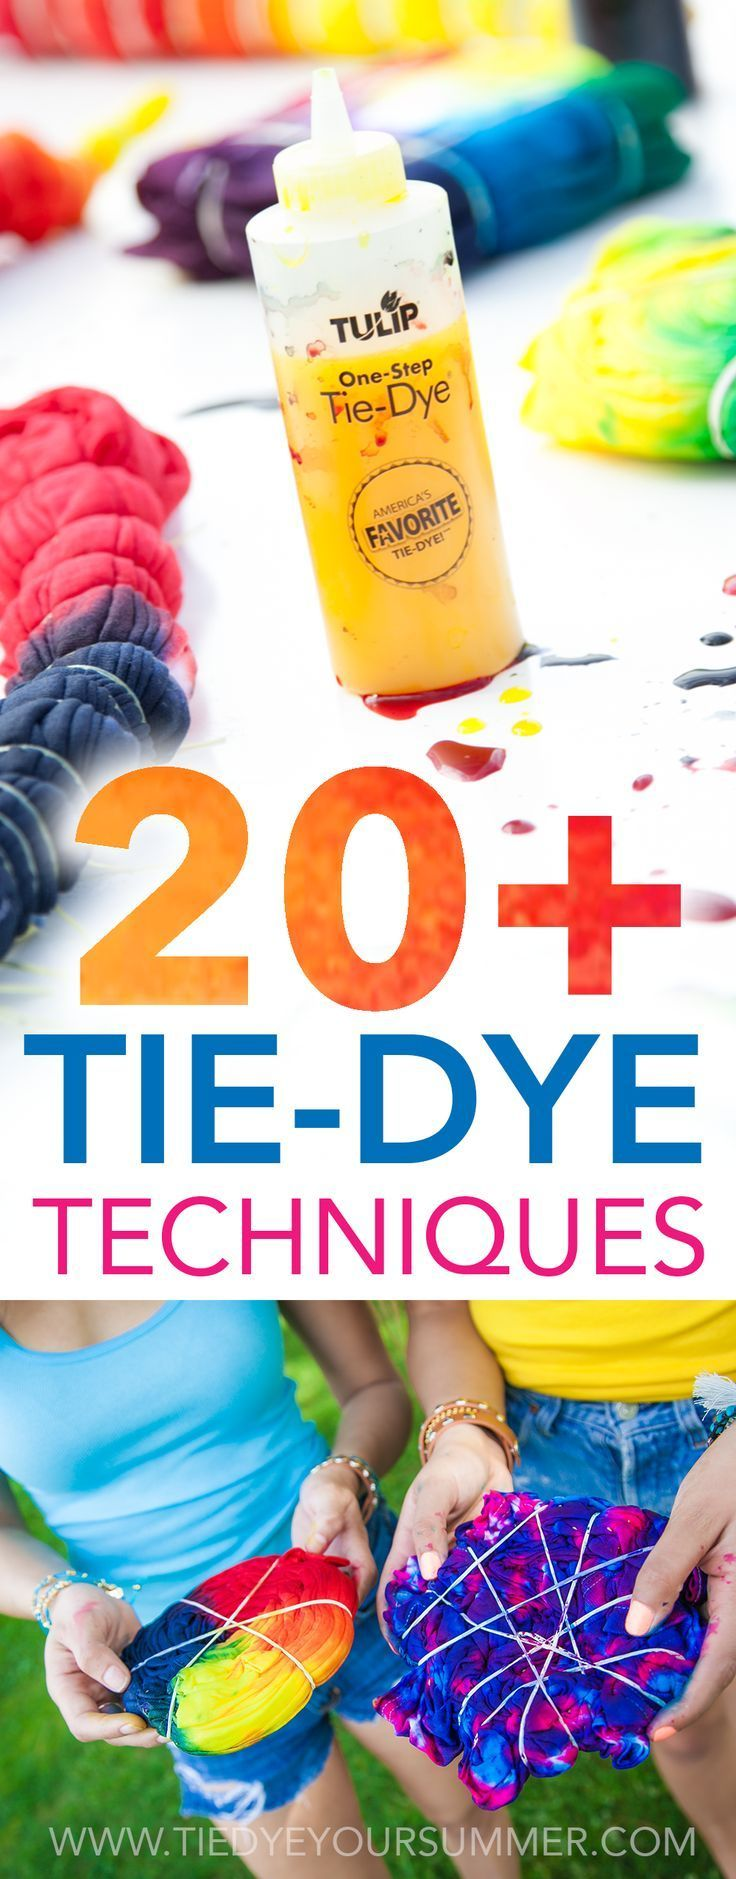 Get inspired with one of these cool tie dye techniques / patterns from Tulip. Get over 20+ ideas from shibori to spiral to ombre to get your tie dye on this summer! Step by step examples make it easy to follow along!